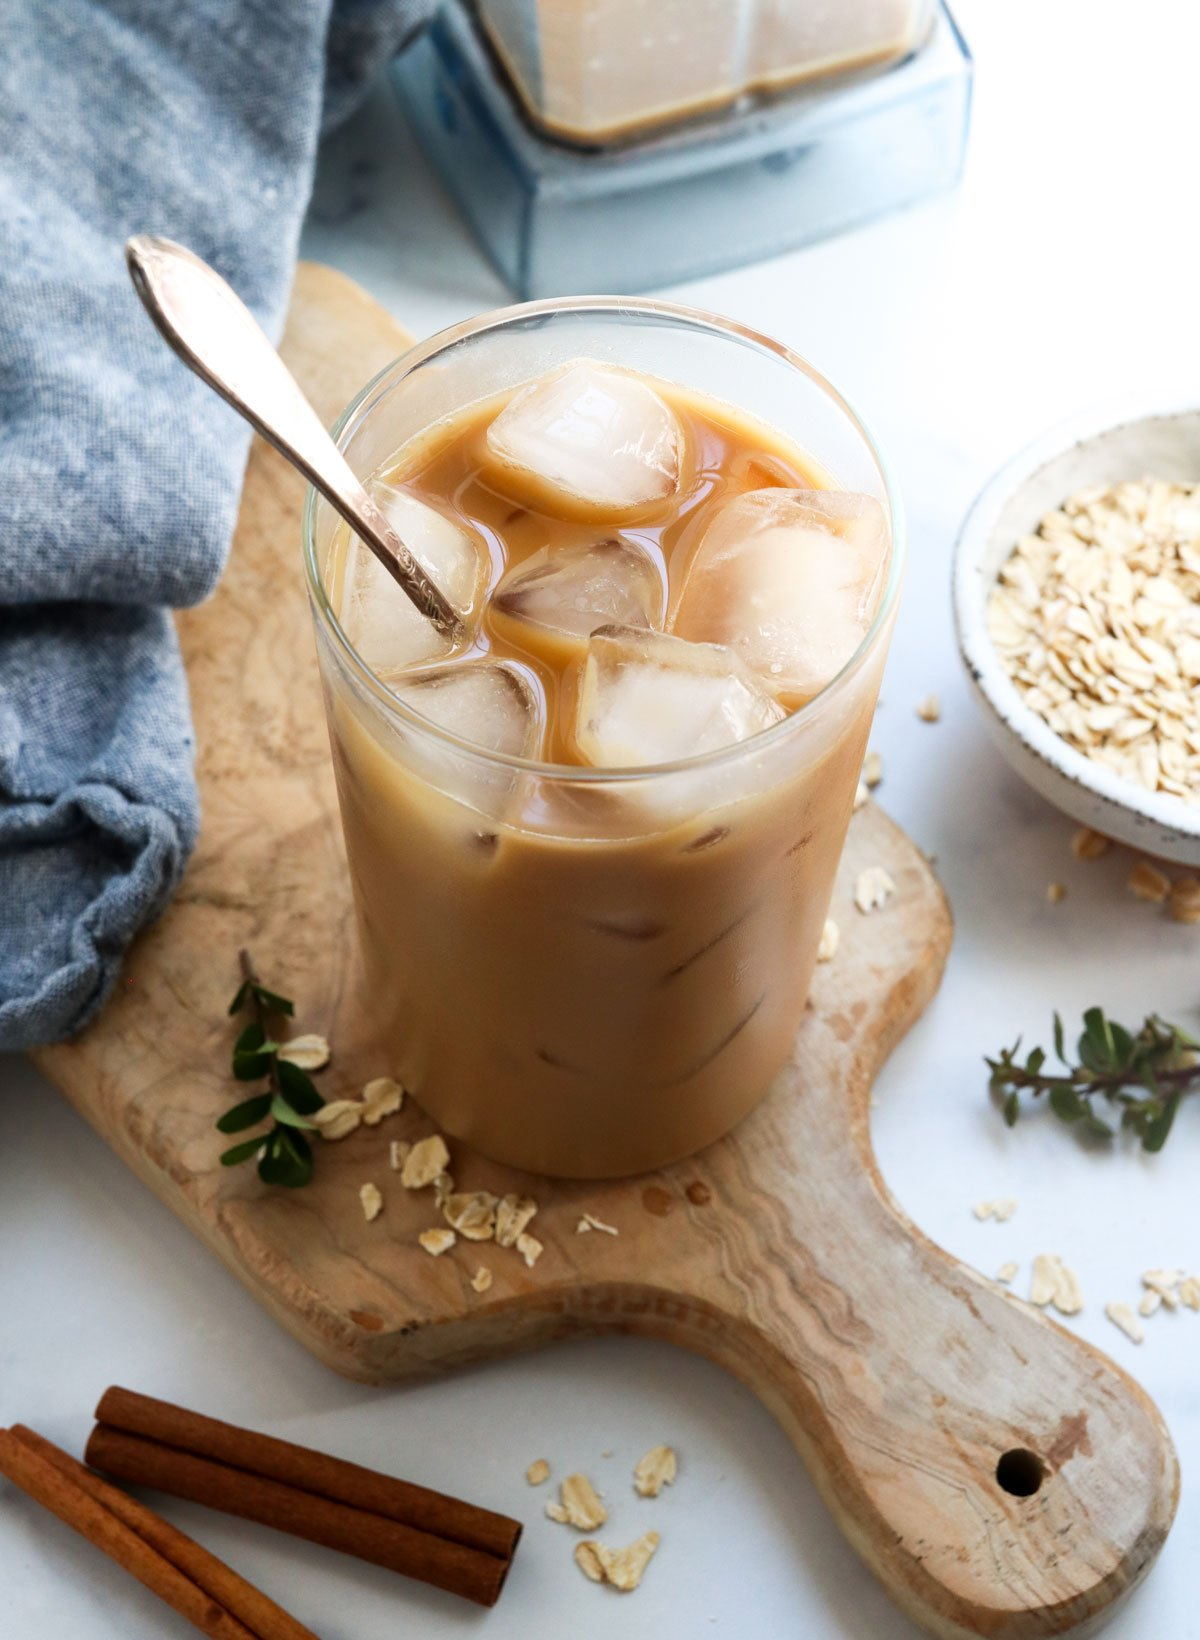 iced oat milk latte with spoon in glass